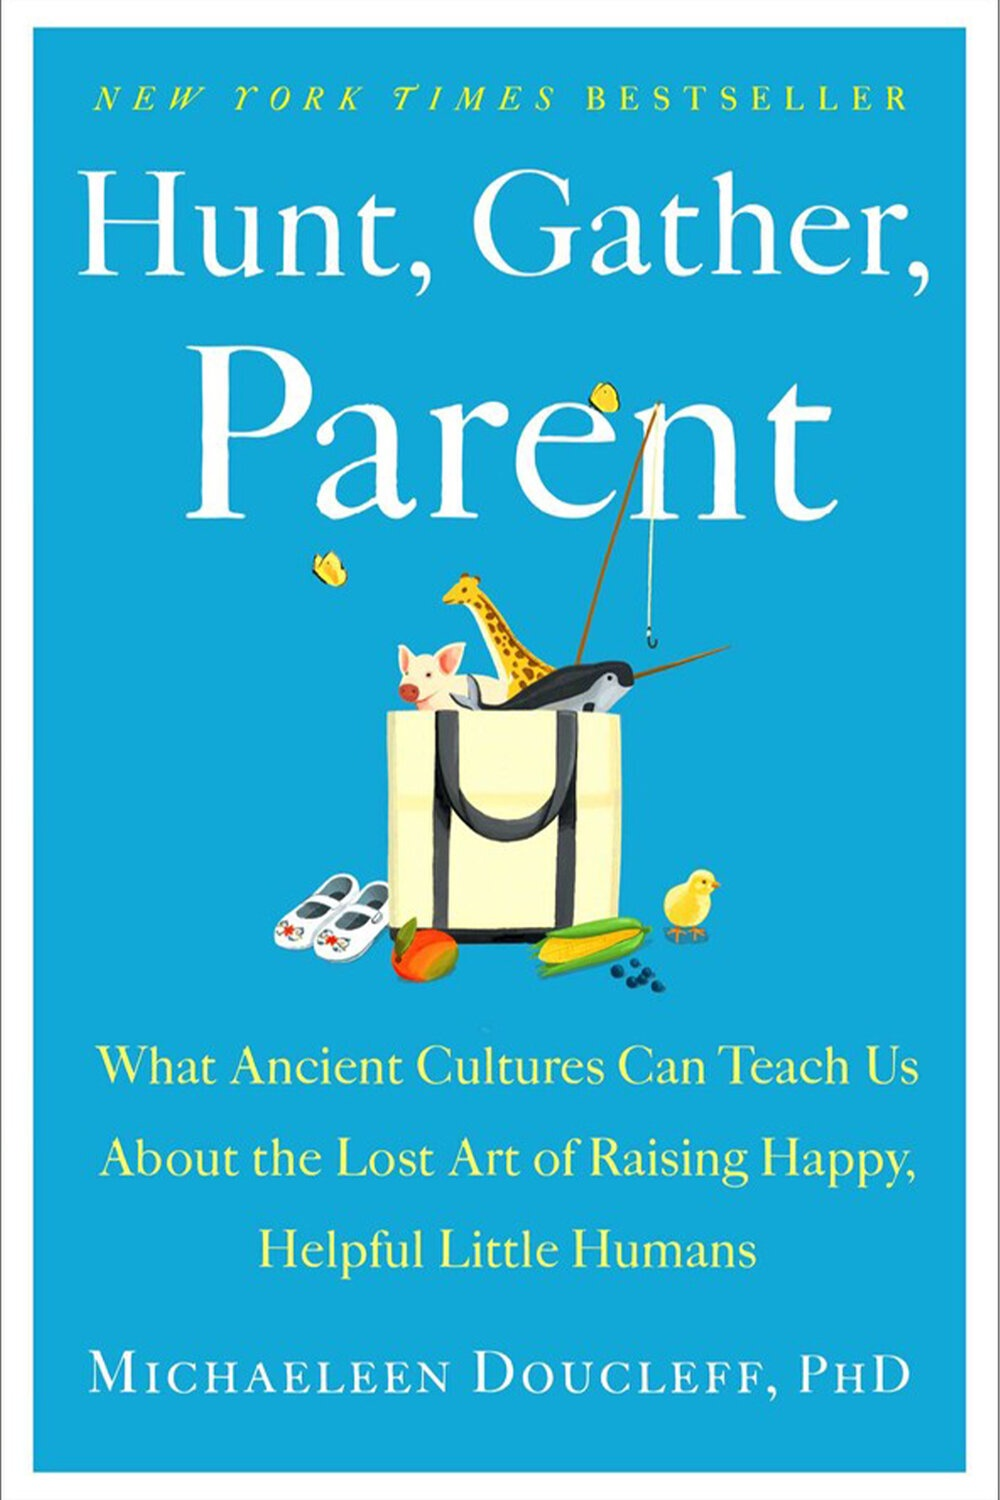 Hunt, Gather, Parent: What Ancient Cultures Can Teach Us About the Lost Art of Raising Happy, Helpful Little Humans by Michaeleen Doucleff, PhD